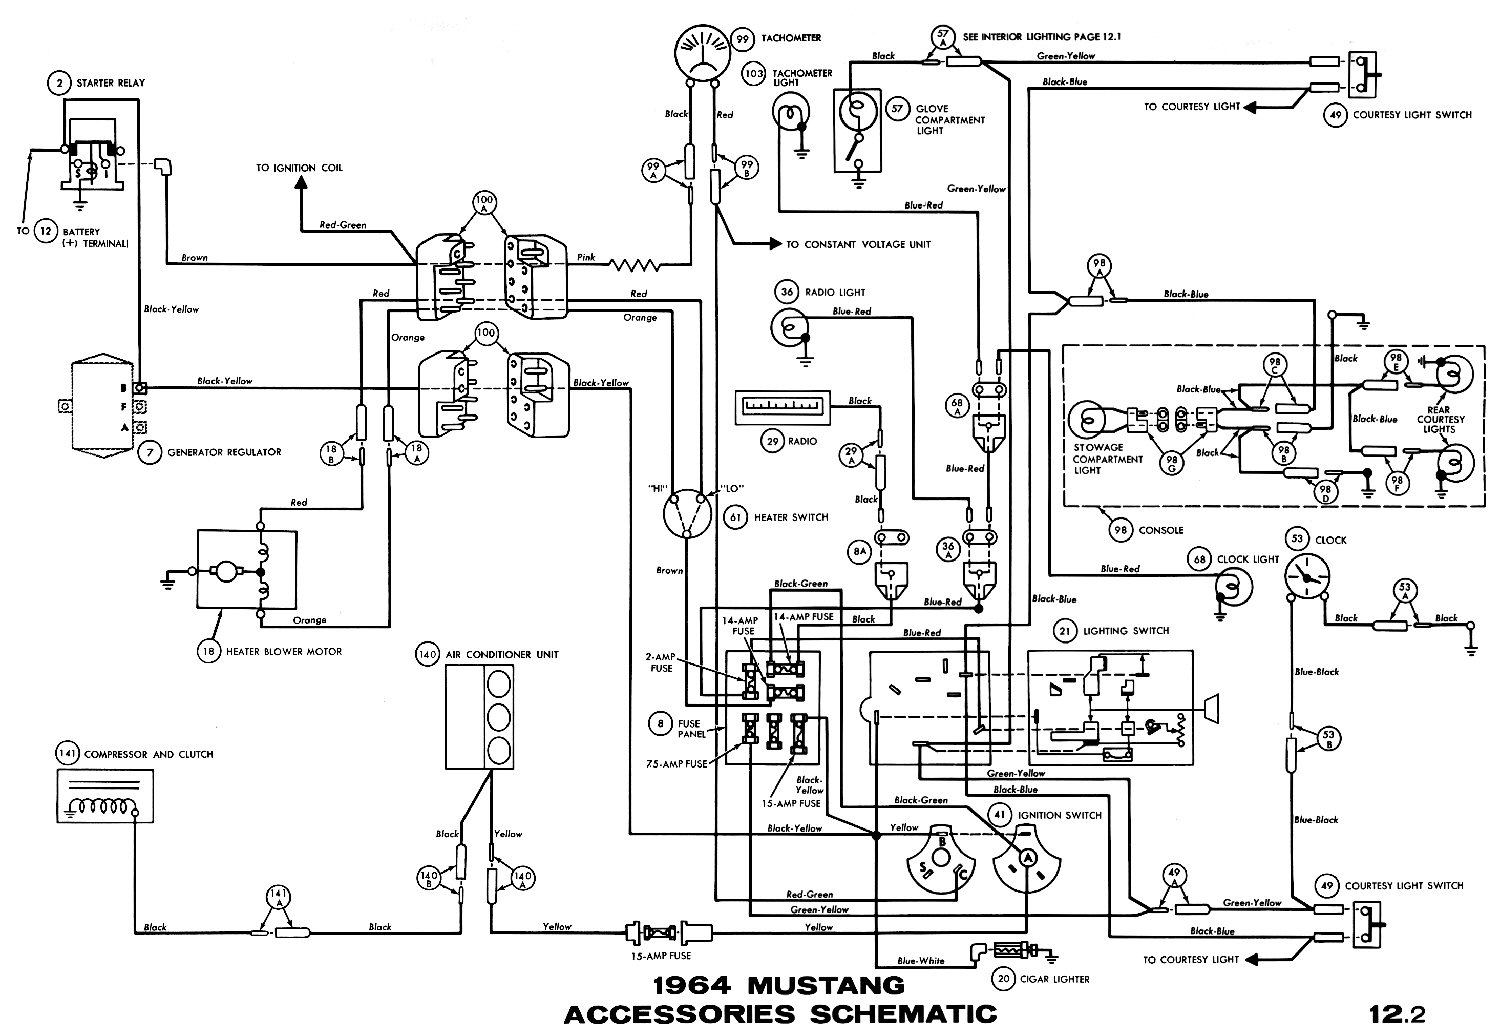 1964m 2015 mustang wiring diagram schematic mustang 2015 \u2022 free wiring 2015 ford focus wiring diagram at edmiracle.co